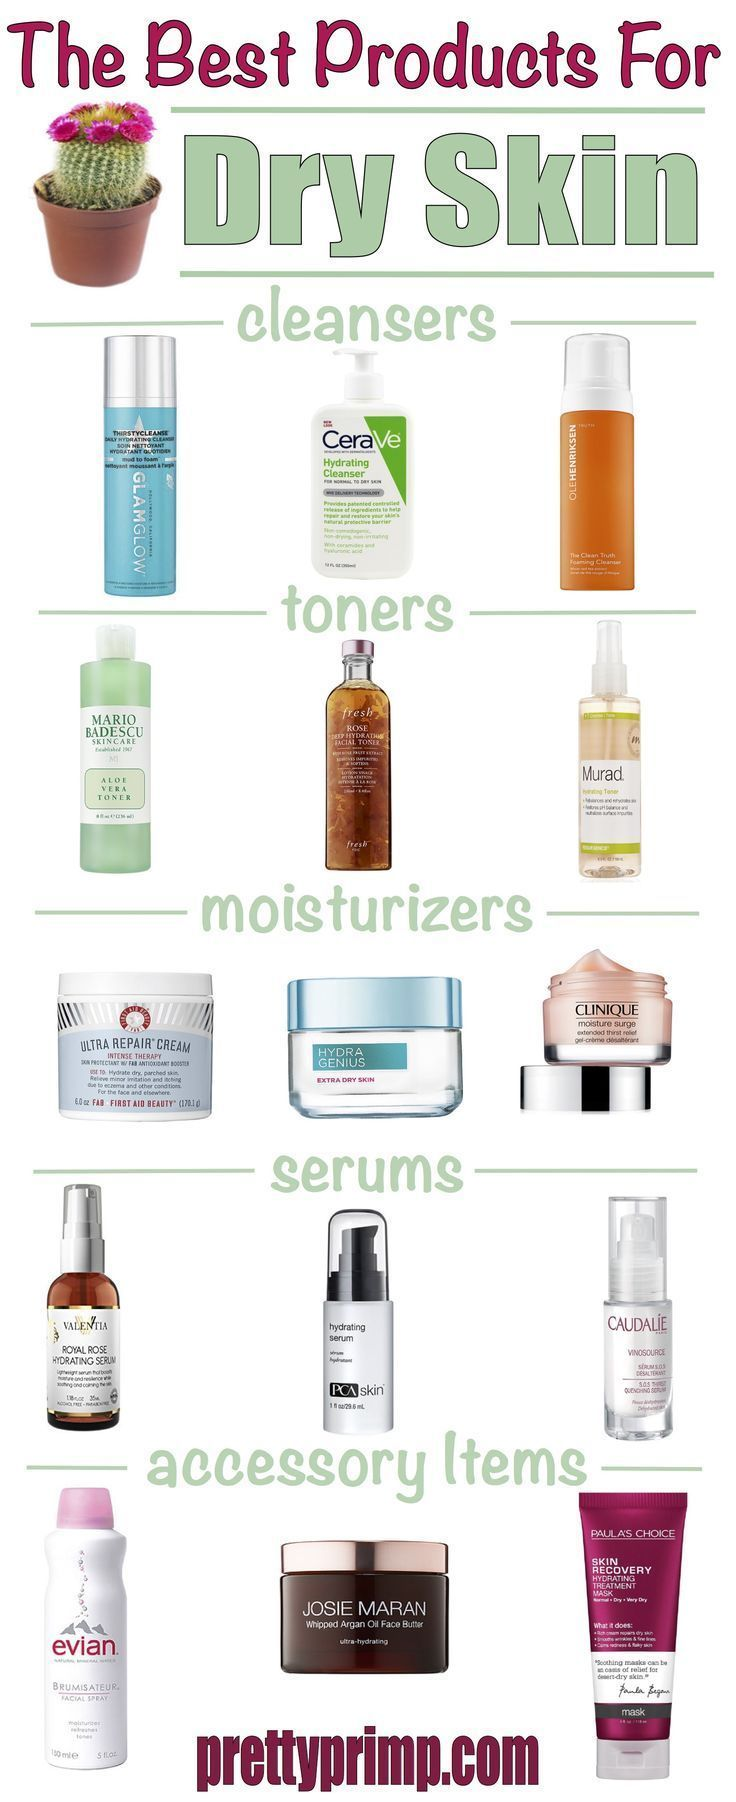 15 Best Products For Dry Skin To Restore Suppleness And Moisture With Images Skin Cleanser Products Moisturizer For Dry Skin Dry Skin Cleansers